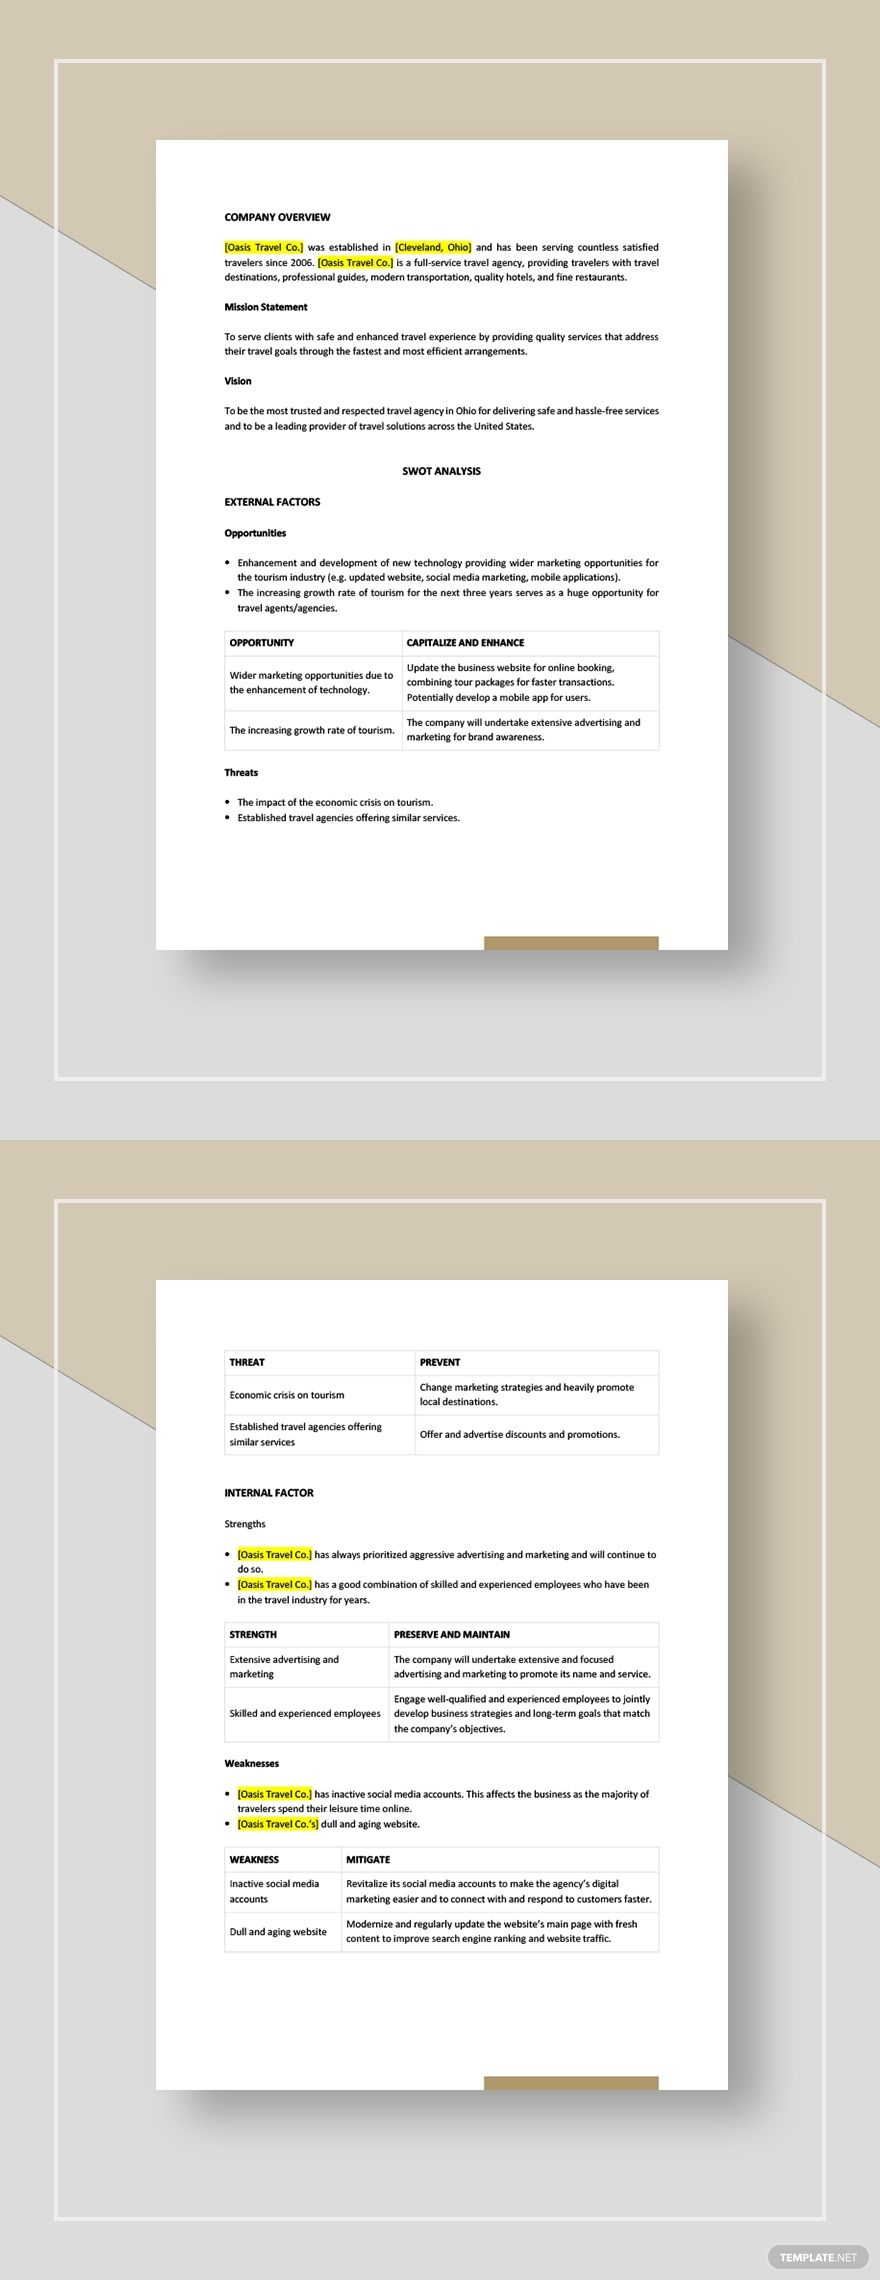 Travel Agency Swot Analysis Template Word Doc Apple Mac Pages Google Docs Swot Analysis Template Travel Agency Swot Analysis